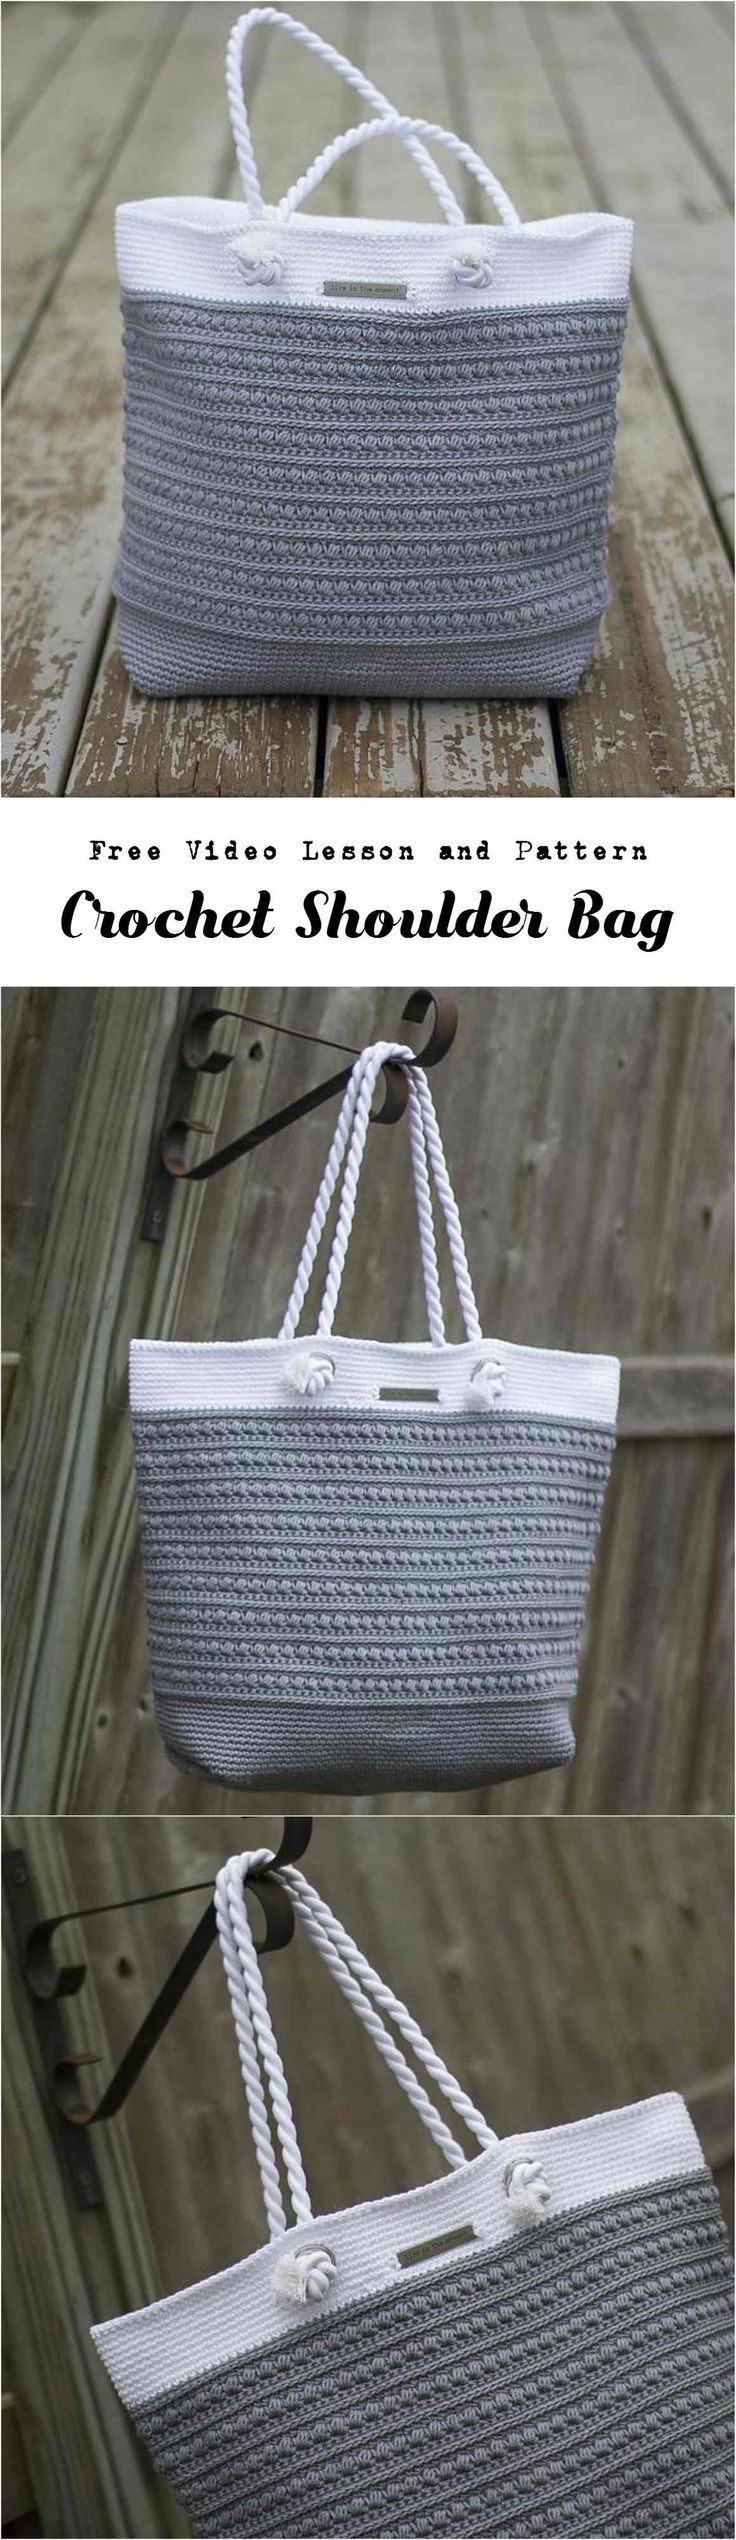 We have not often post and instructions for bags, but it's time to make one.Crochet shoulder bag with free video tutorial and free written pattern for all and also clearly explained. Look at the design and you will understand that the bag like this, Pretty, useful, comfortable and light for everyone is perfect. We love bags and it's one of the most important accessory for us. Make with your hands and ideas awesome bag. you can also remake design, crochet it in other colors add some appliques…